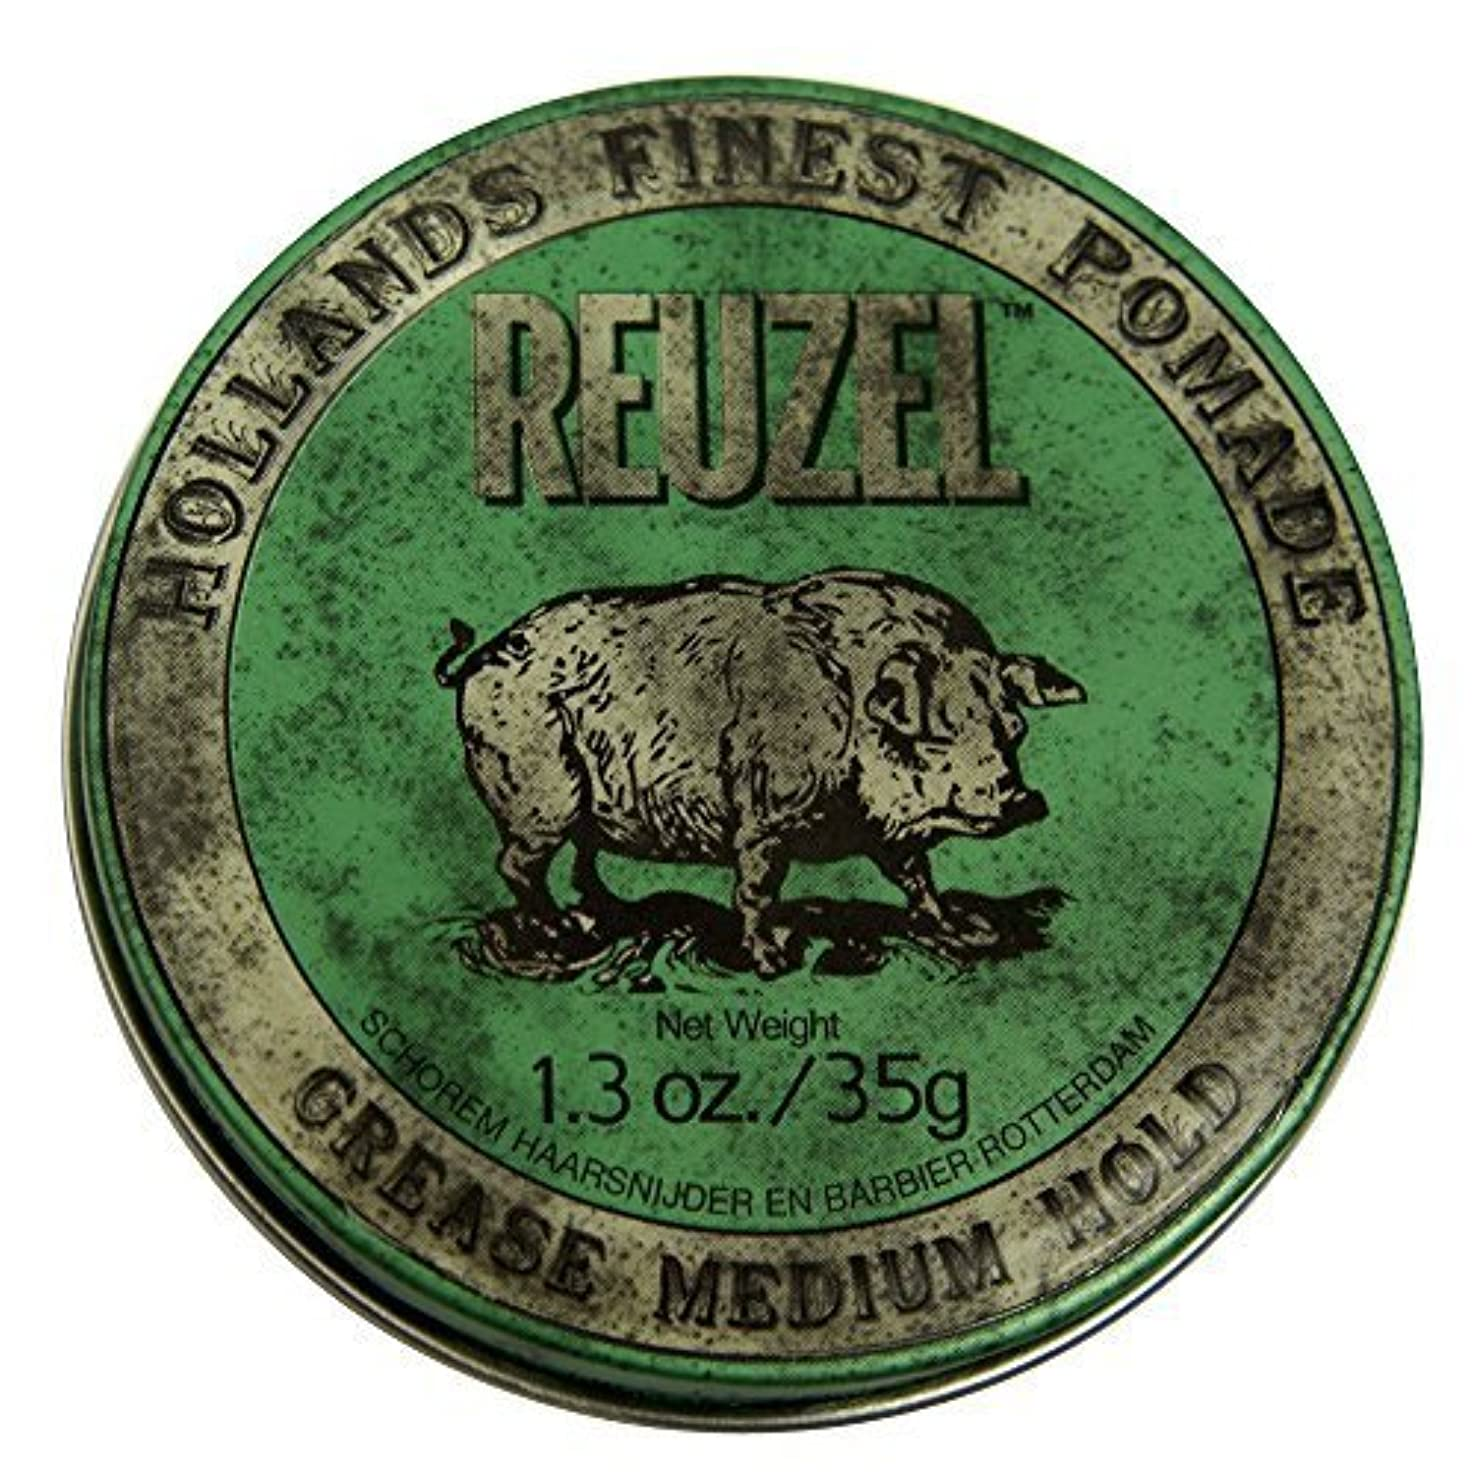 ダメージ沿って許さないby Reuzel Reuzel Green Grease Medium Hold Hair Styling Pomade Piglet 1.3oz (35g) Wax/Gel [並行輸入品]